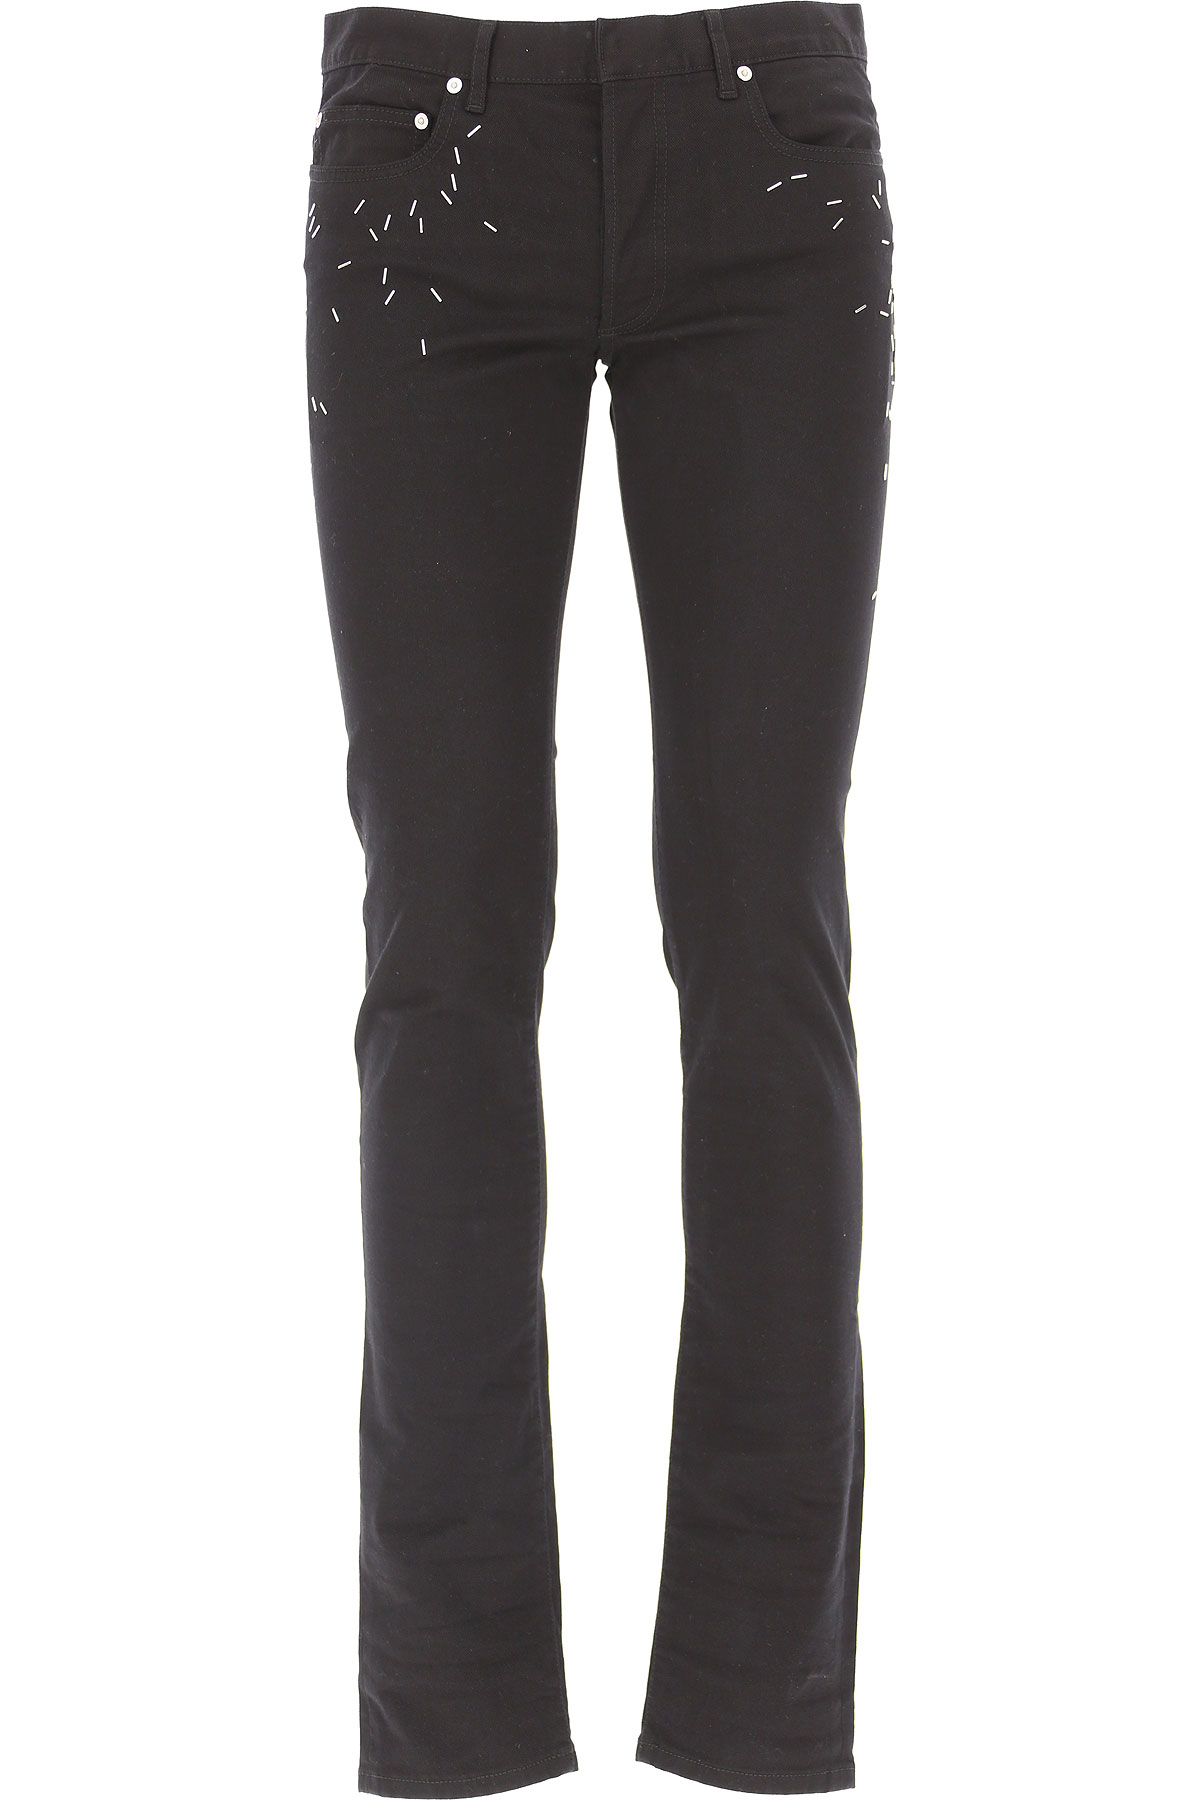 Christian Dior Jeans On Sale in Outlet, Black, Cotton, 2017, 31 32